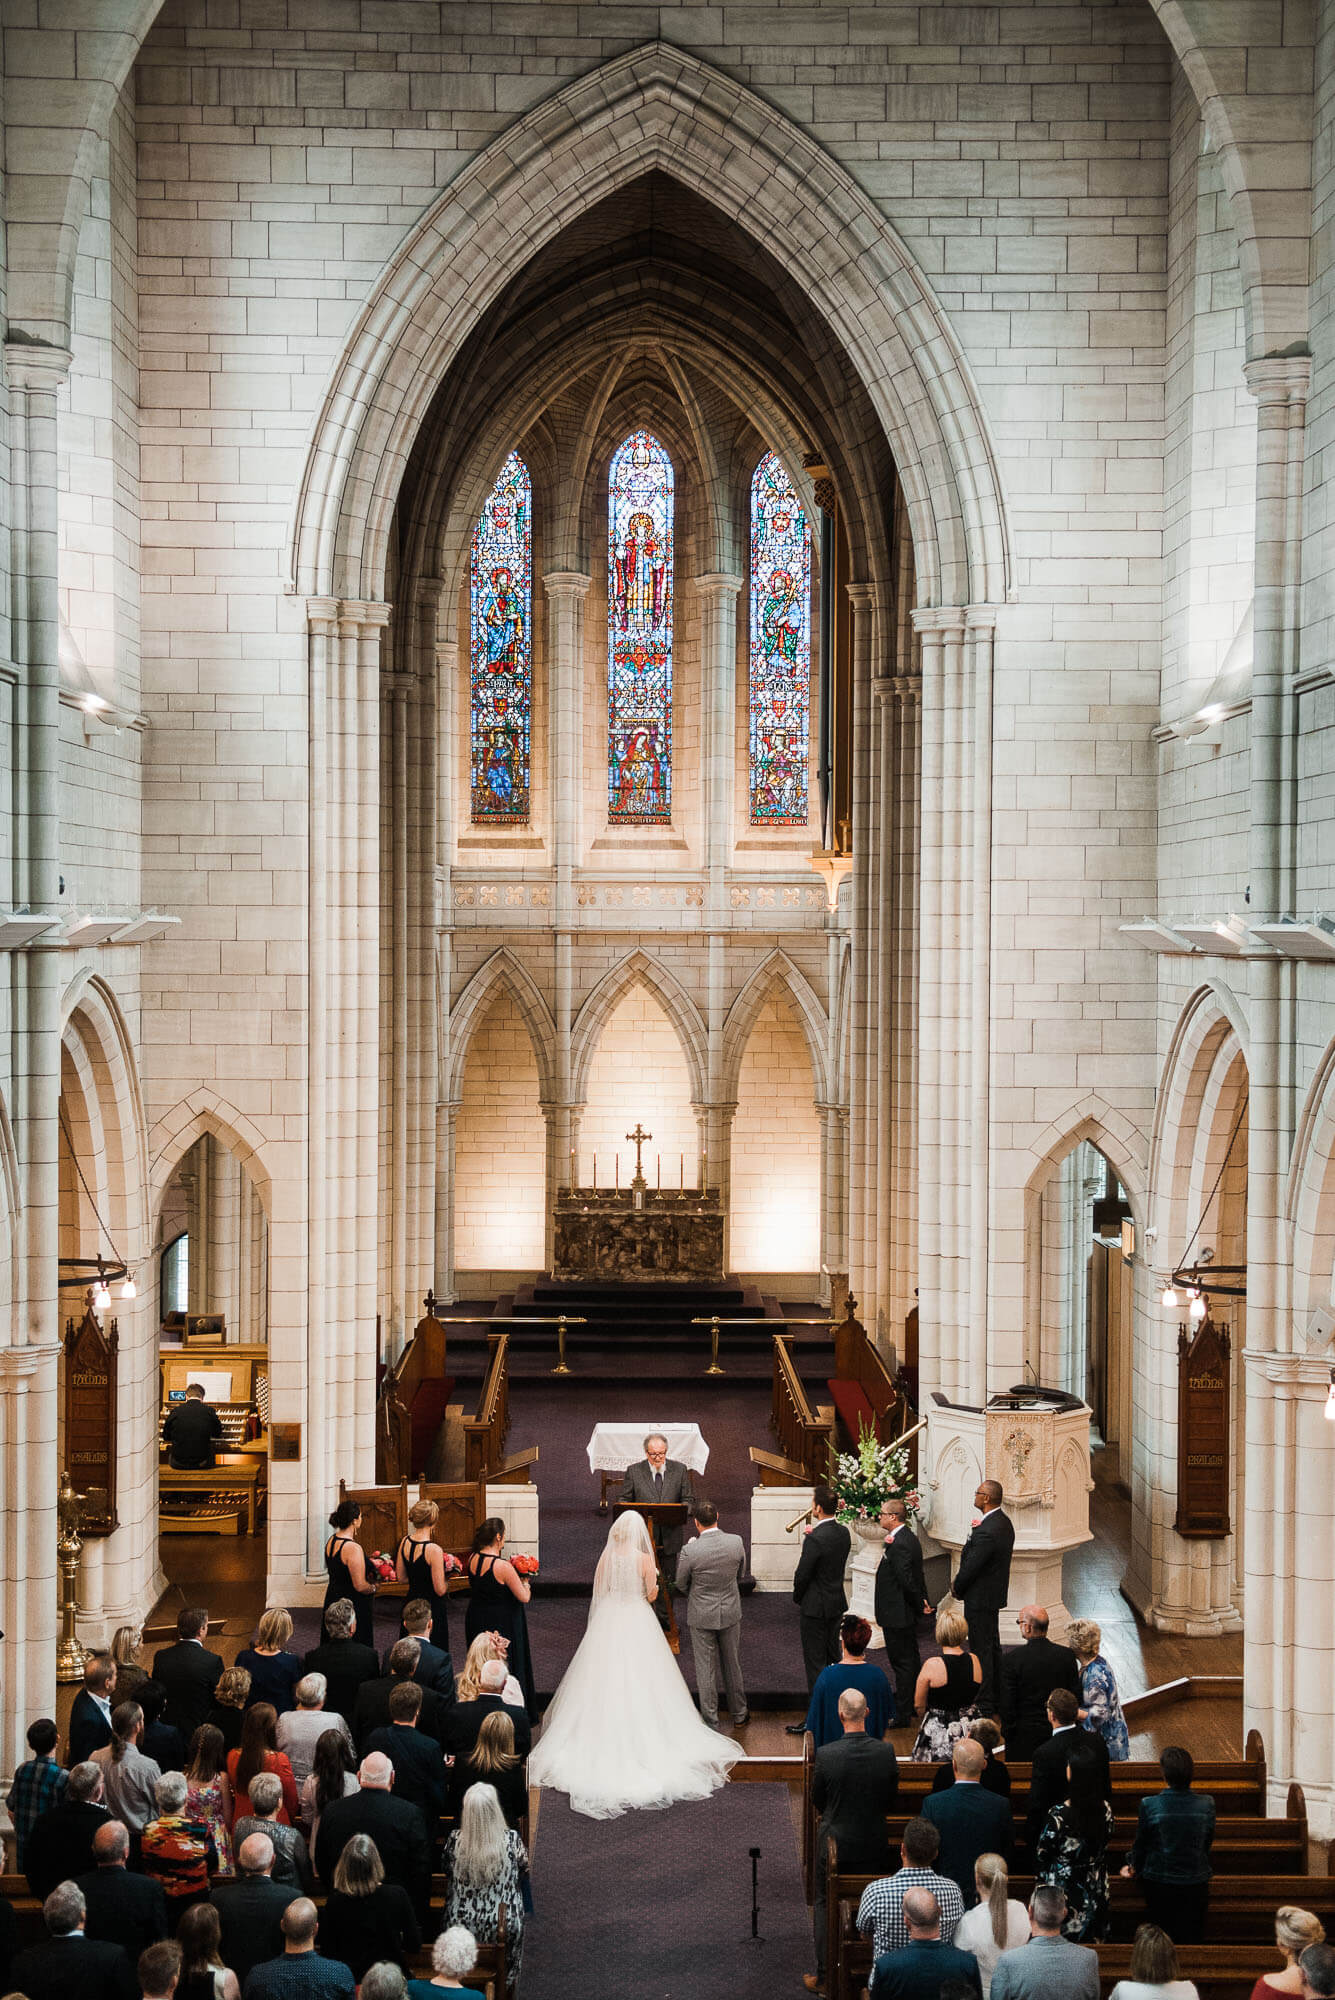 bride-and-groom-at-altar-view-from-above.jpg